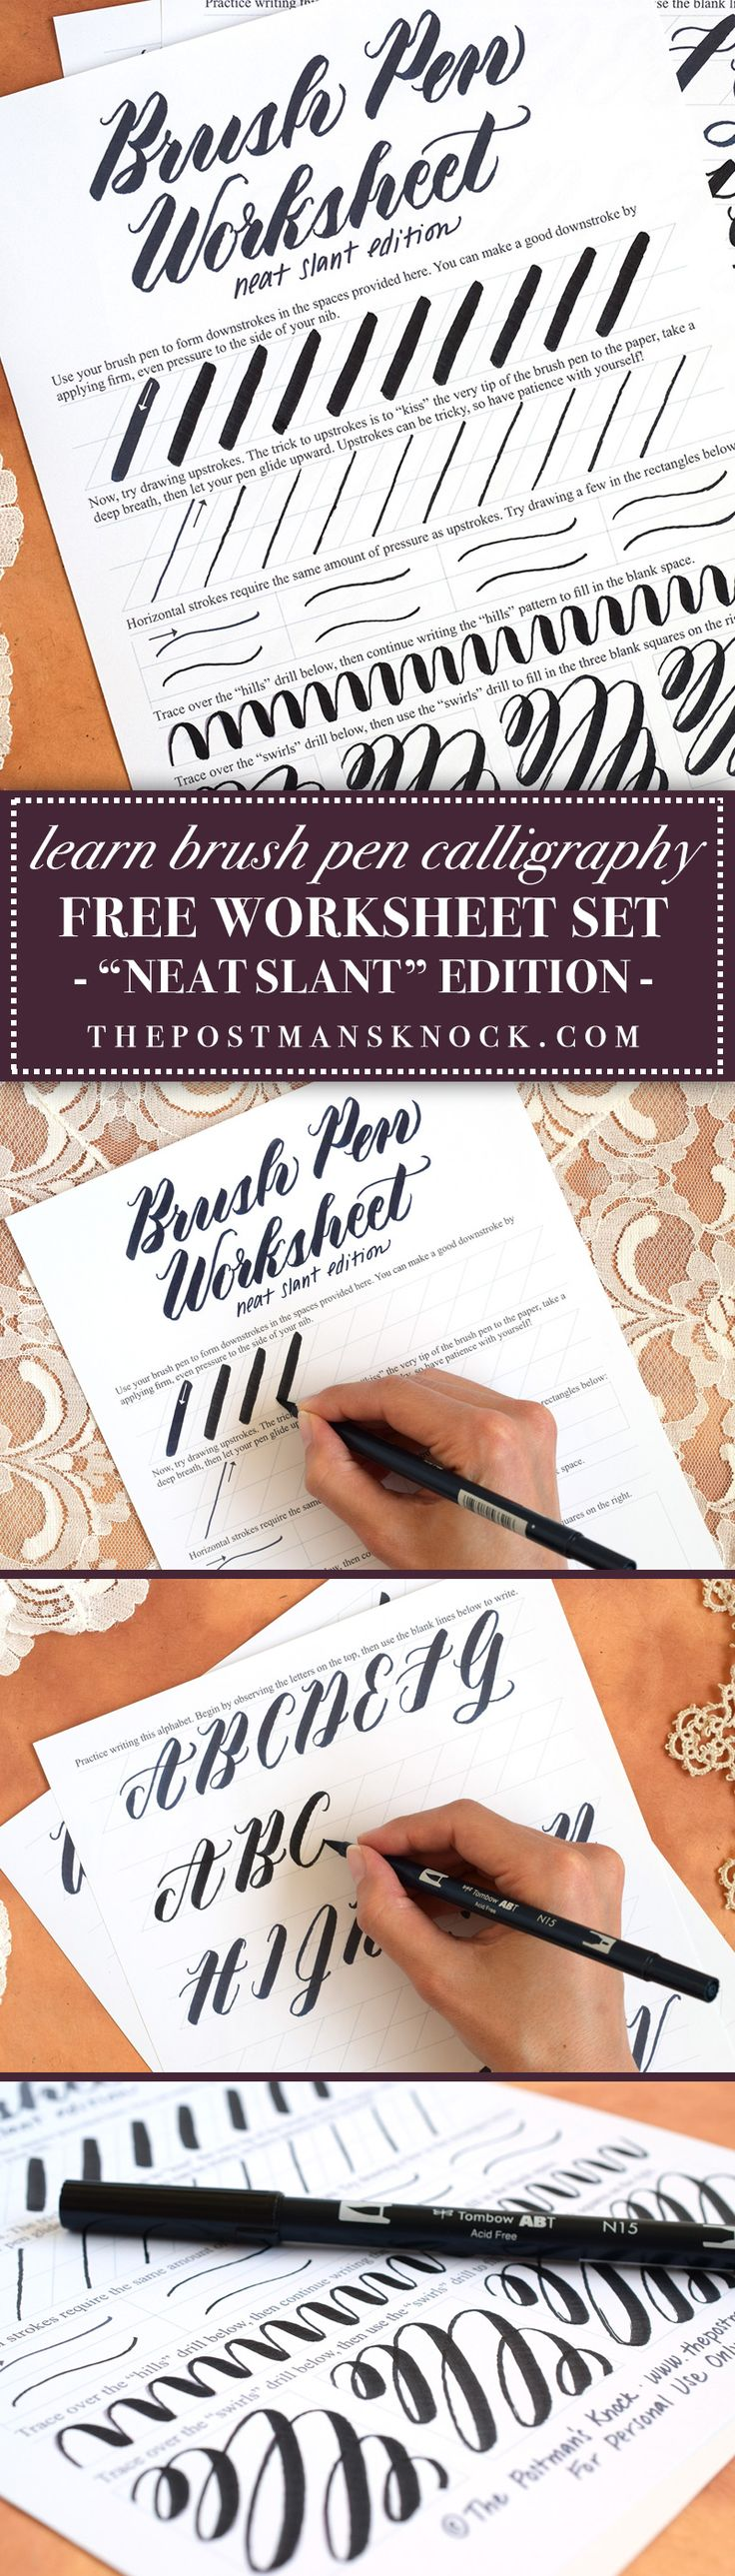 If you're looking for some fresh brush pen calligraphy practice, you'll enjoy the free printable worksheet included in this post! The worksheet features a page of basic practice, drills, and a neat alphabet exemplar.